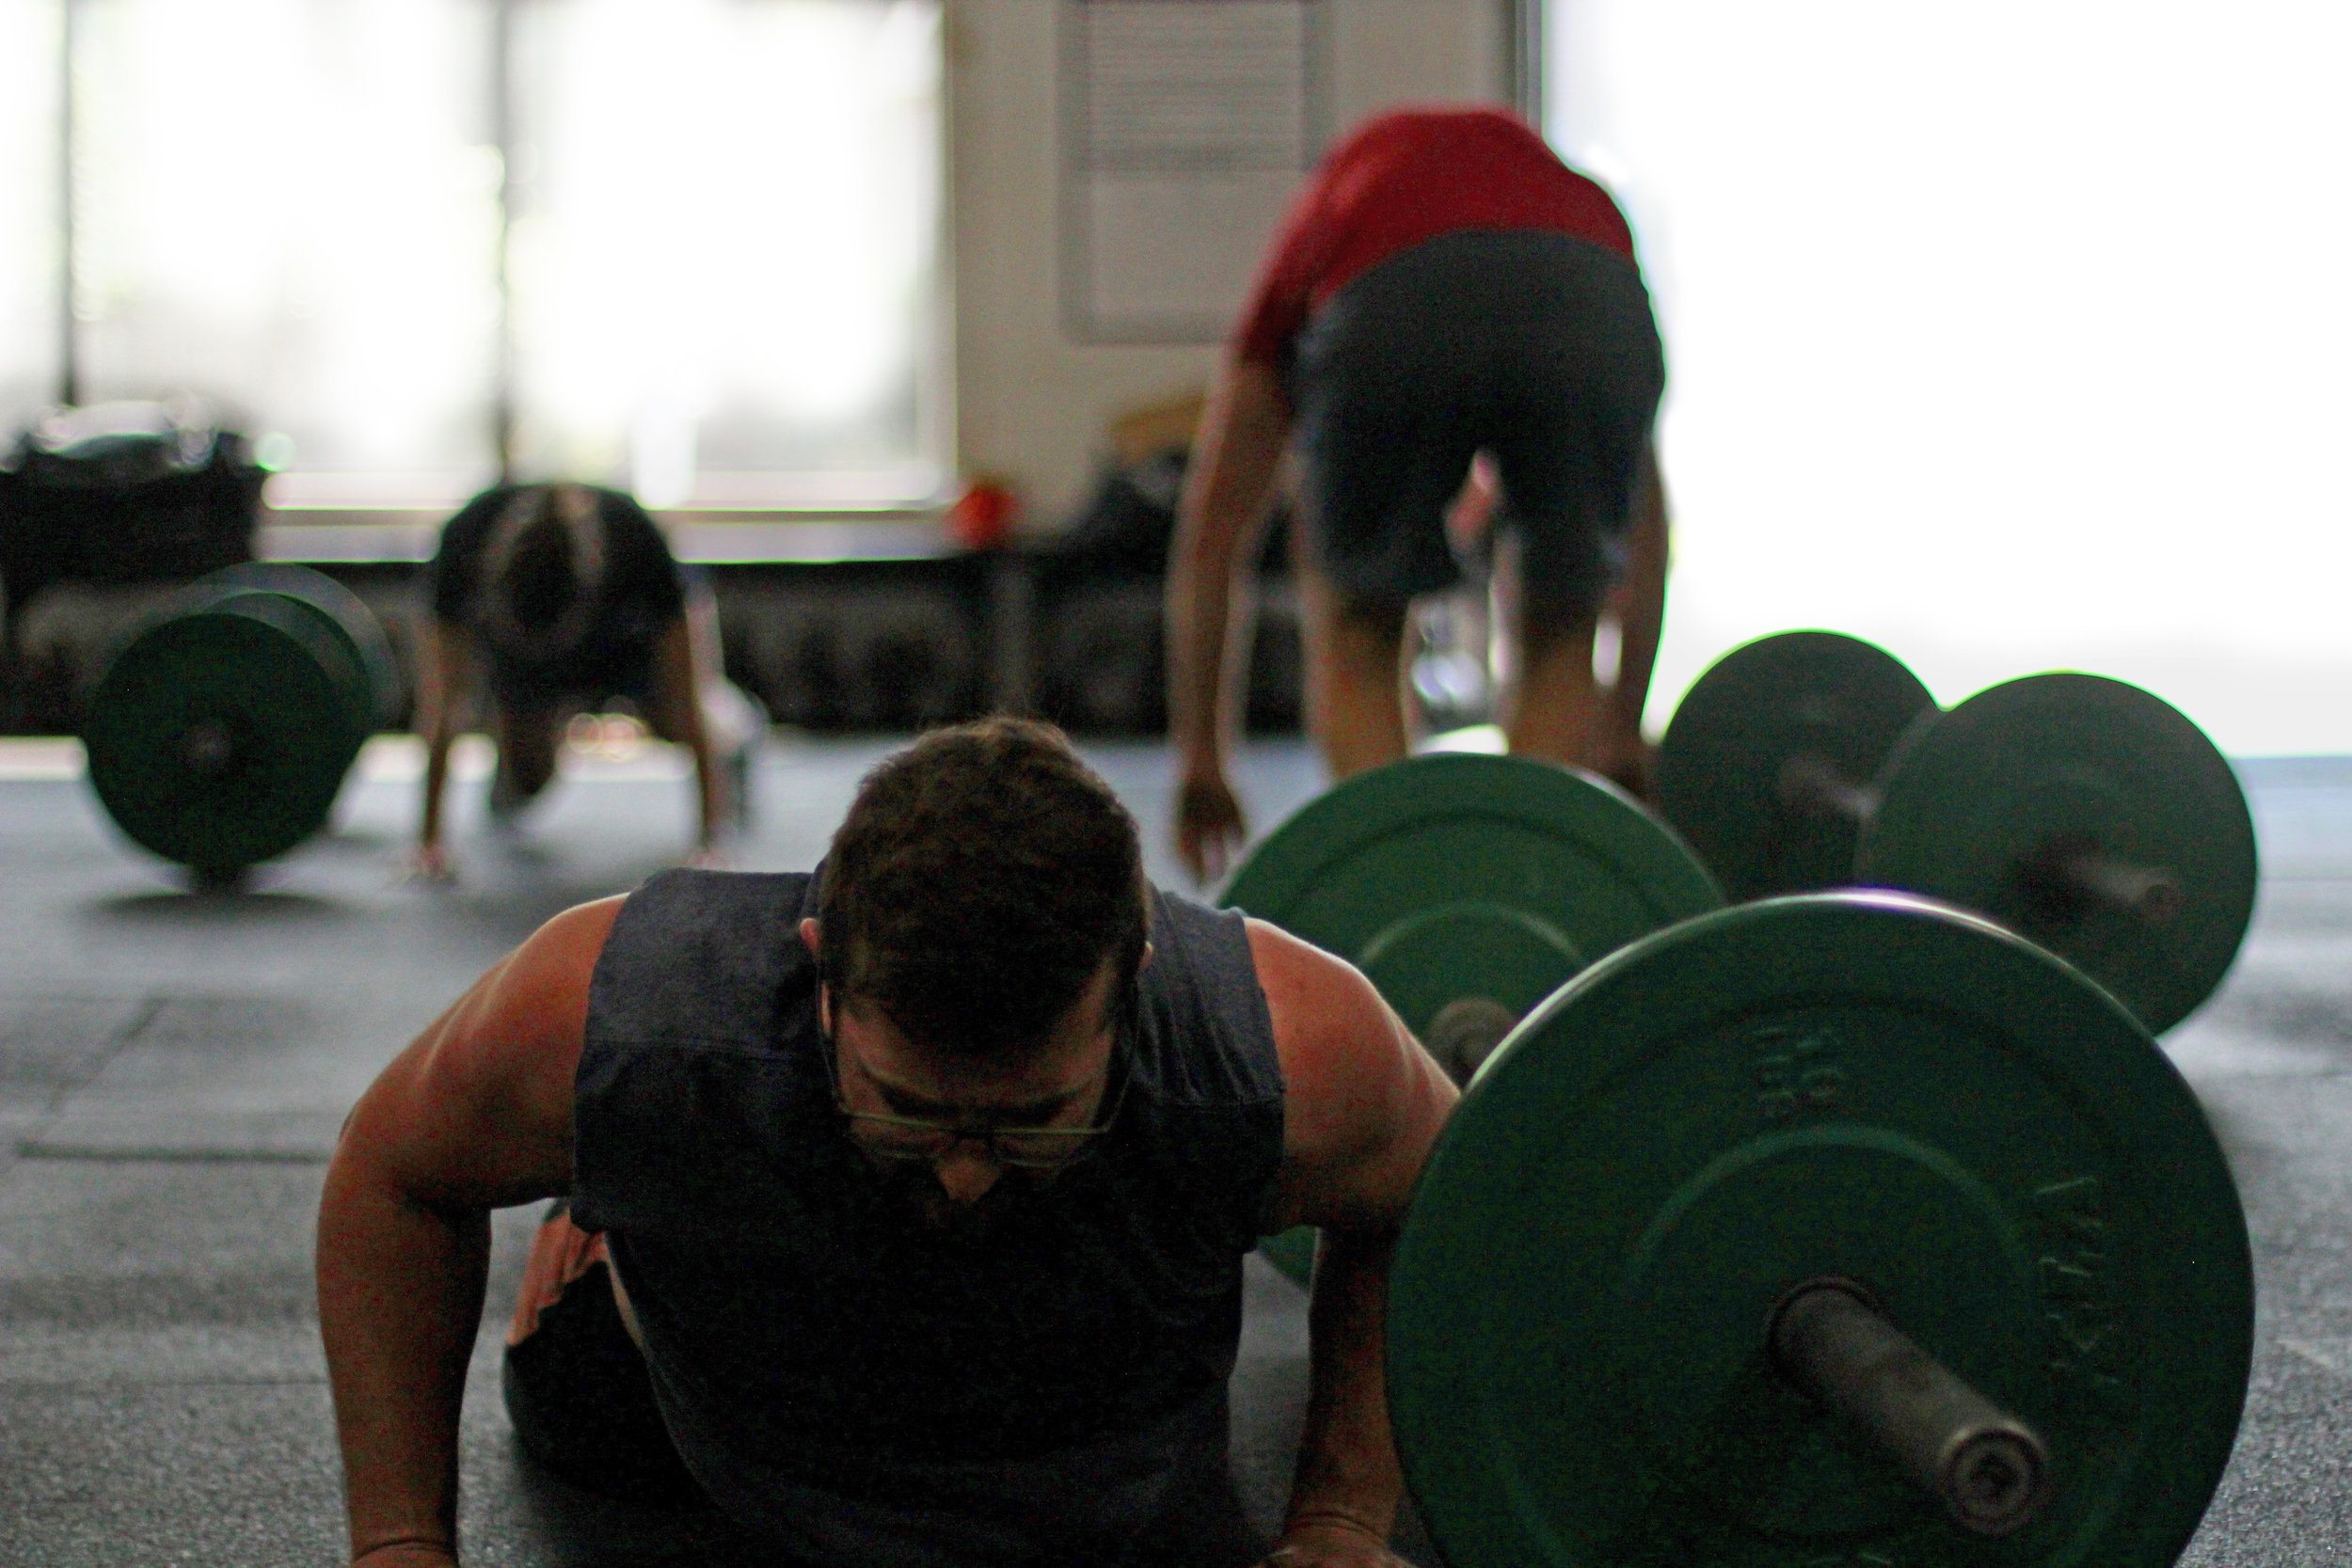 That feeling when Burpees over the Barbell gets real!